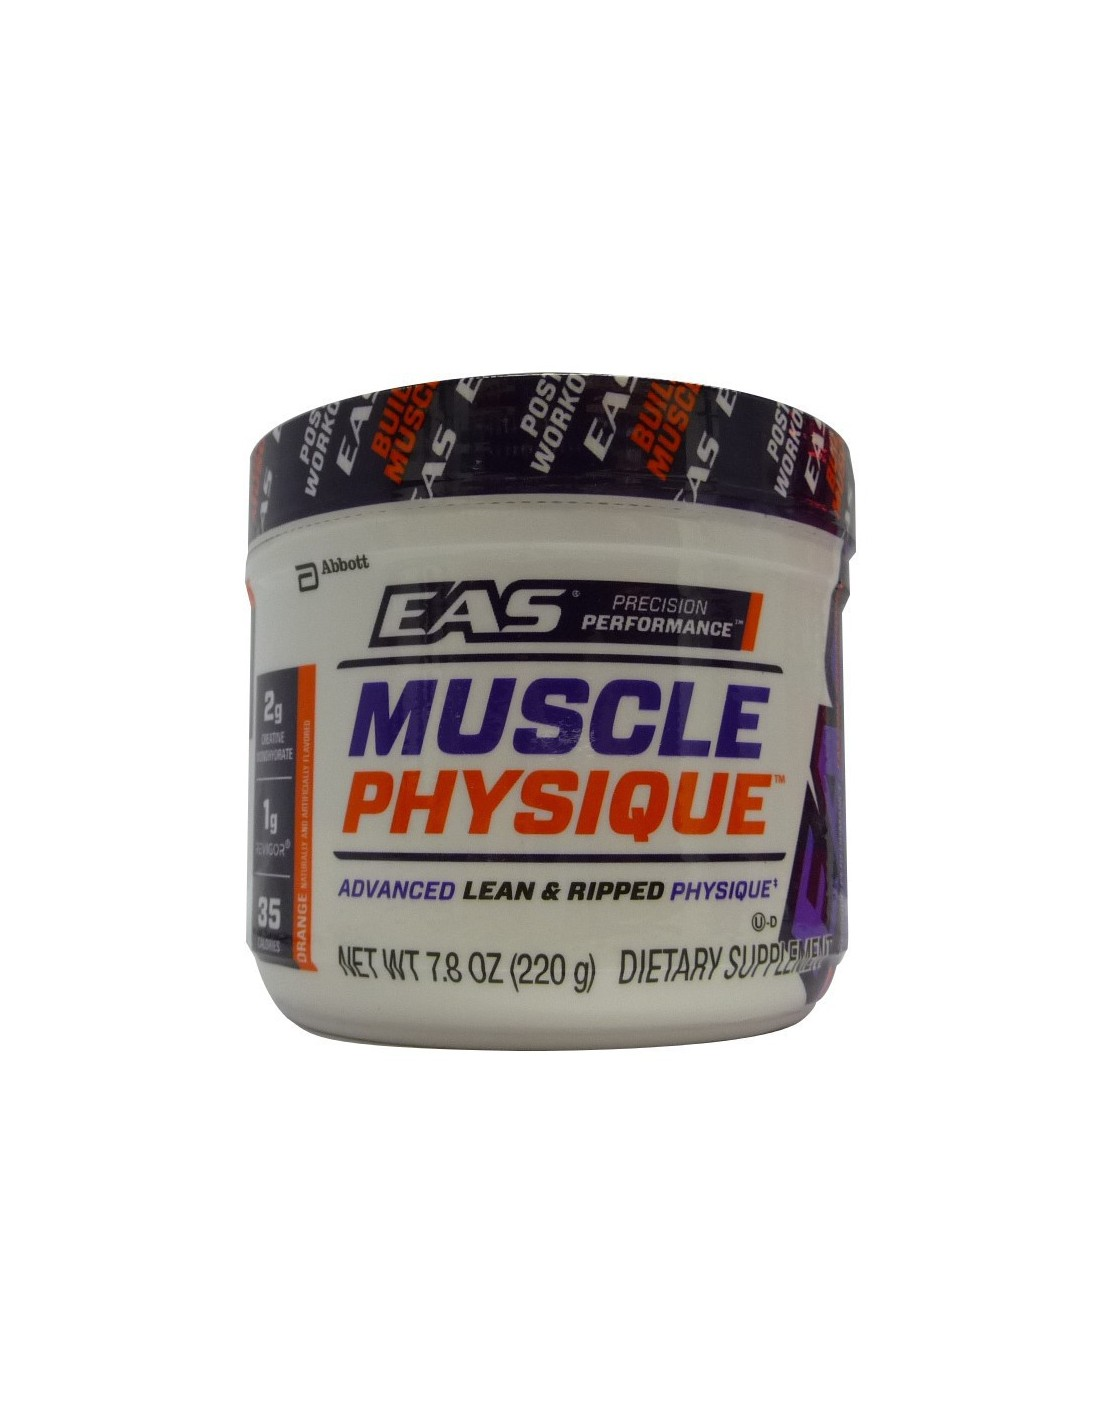 EAS Precision Muscle Physique (BETAGEN) 220g